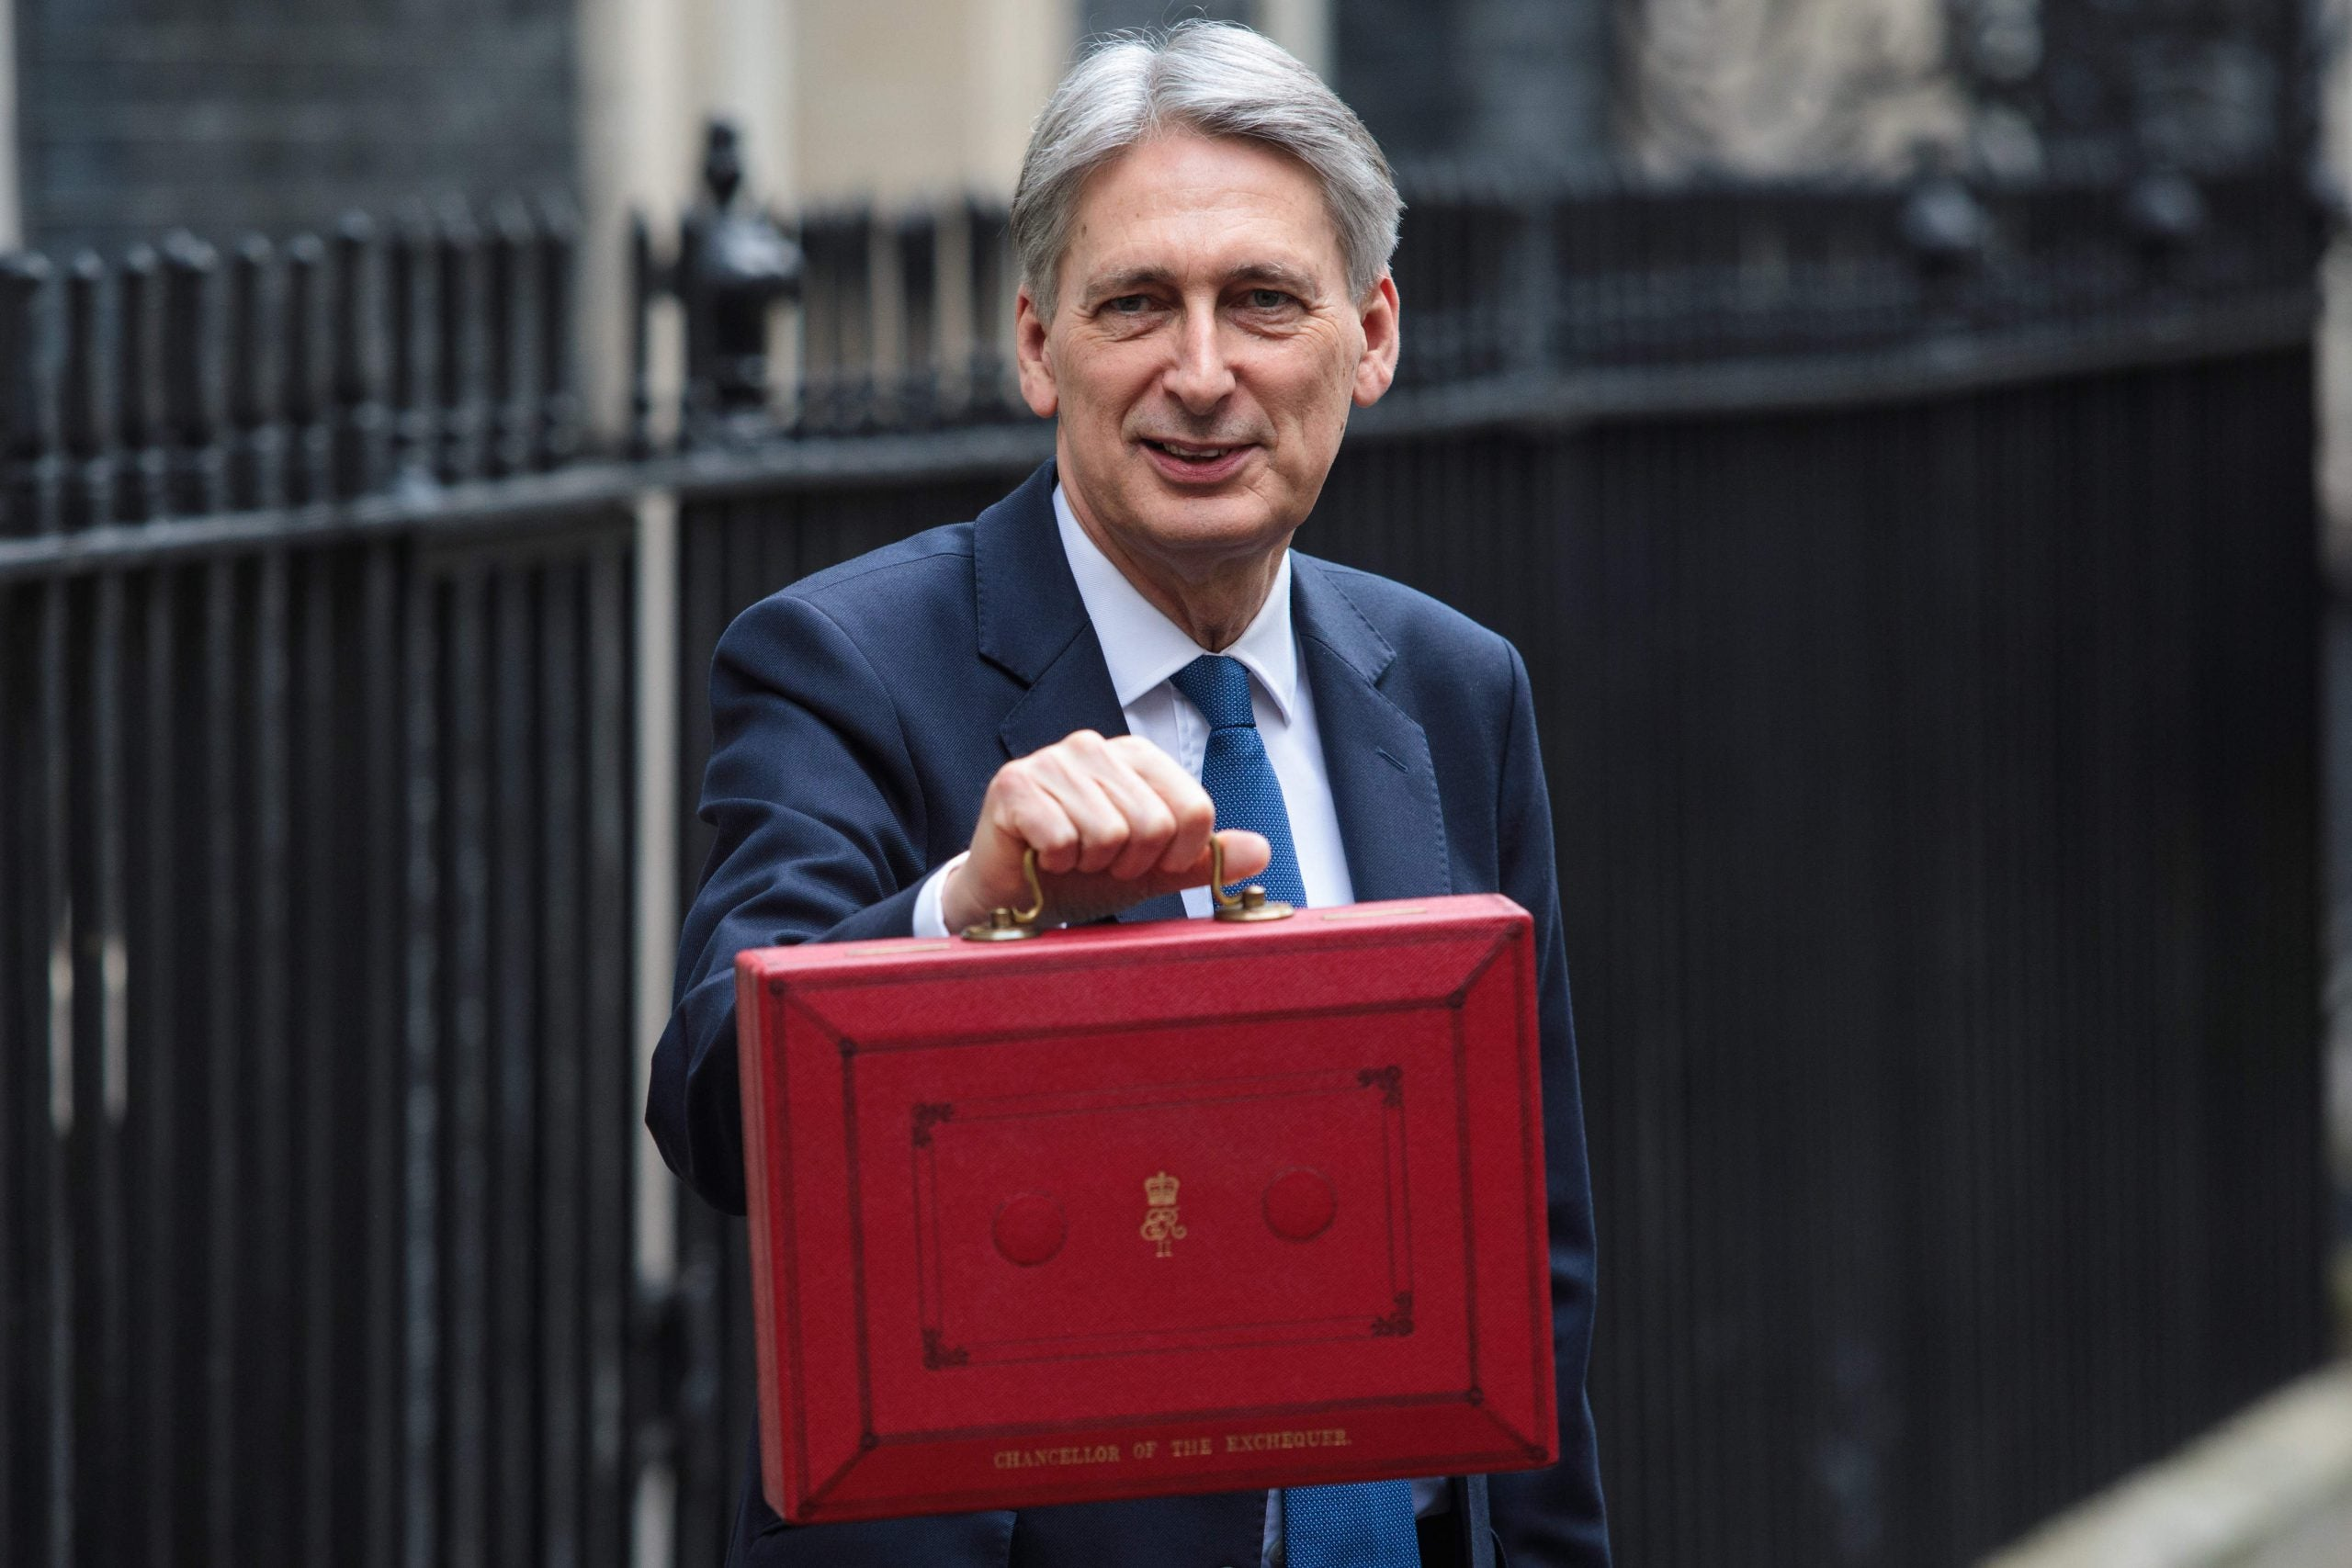 Bicorne hats, Brexit bluster and ill-advised Budget banter: my political awards of 2017